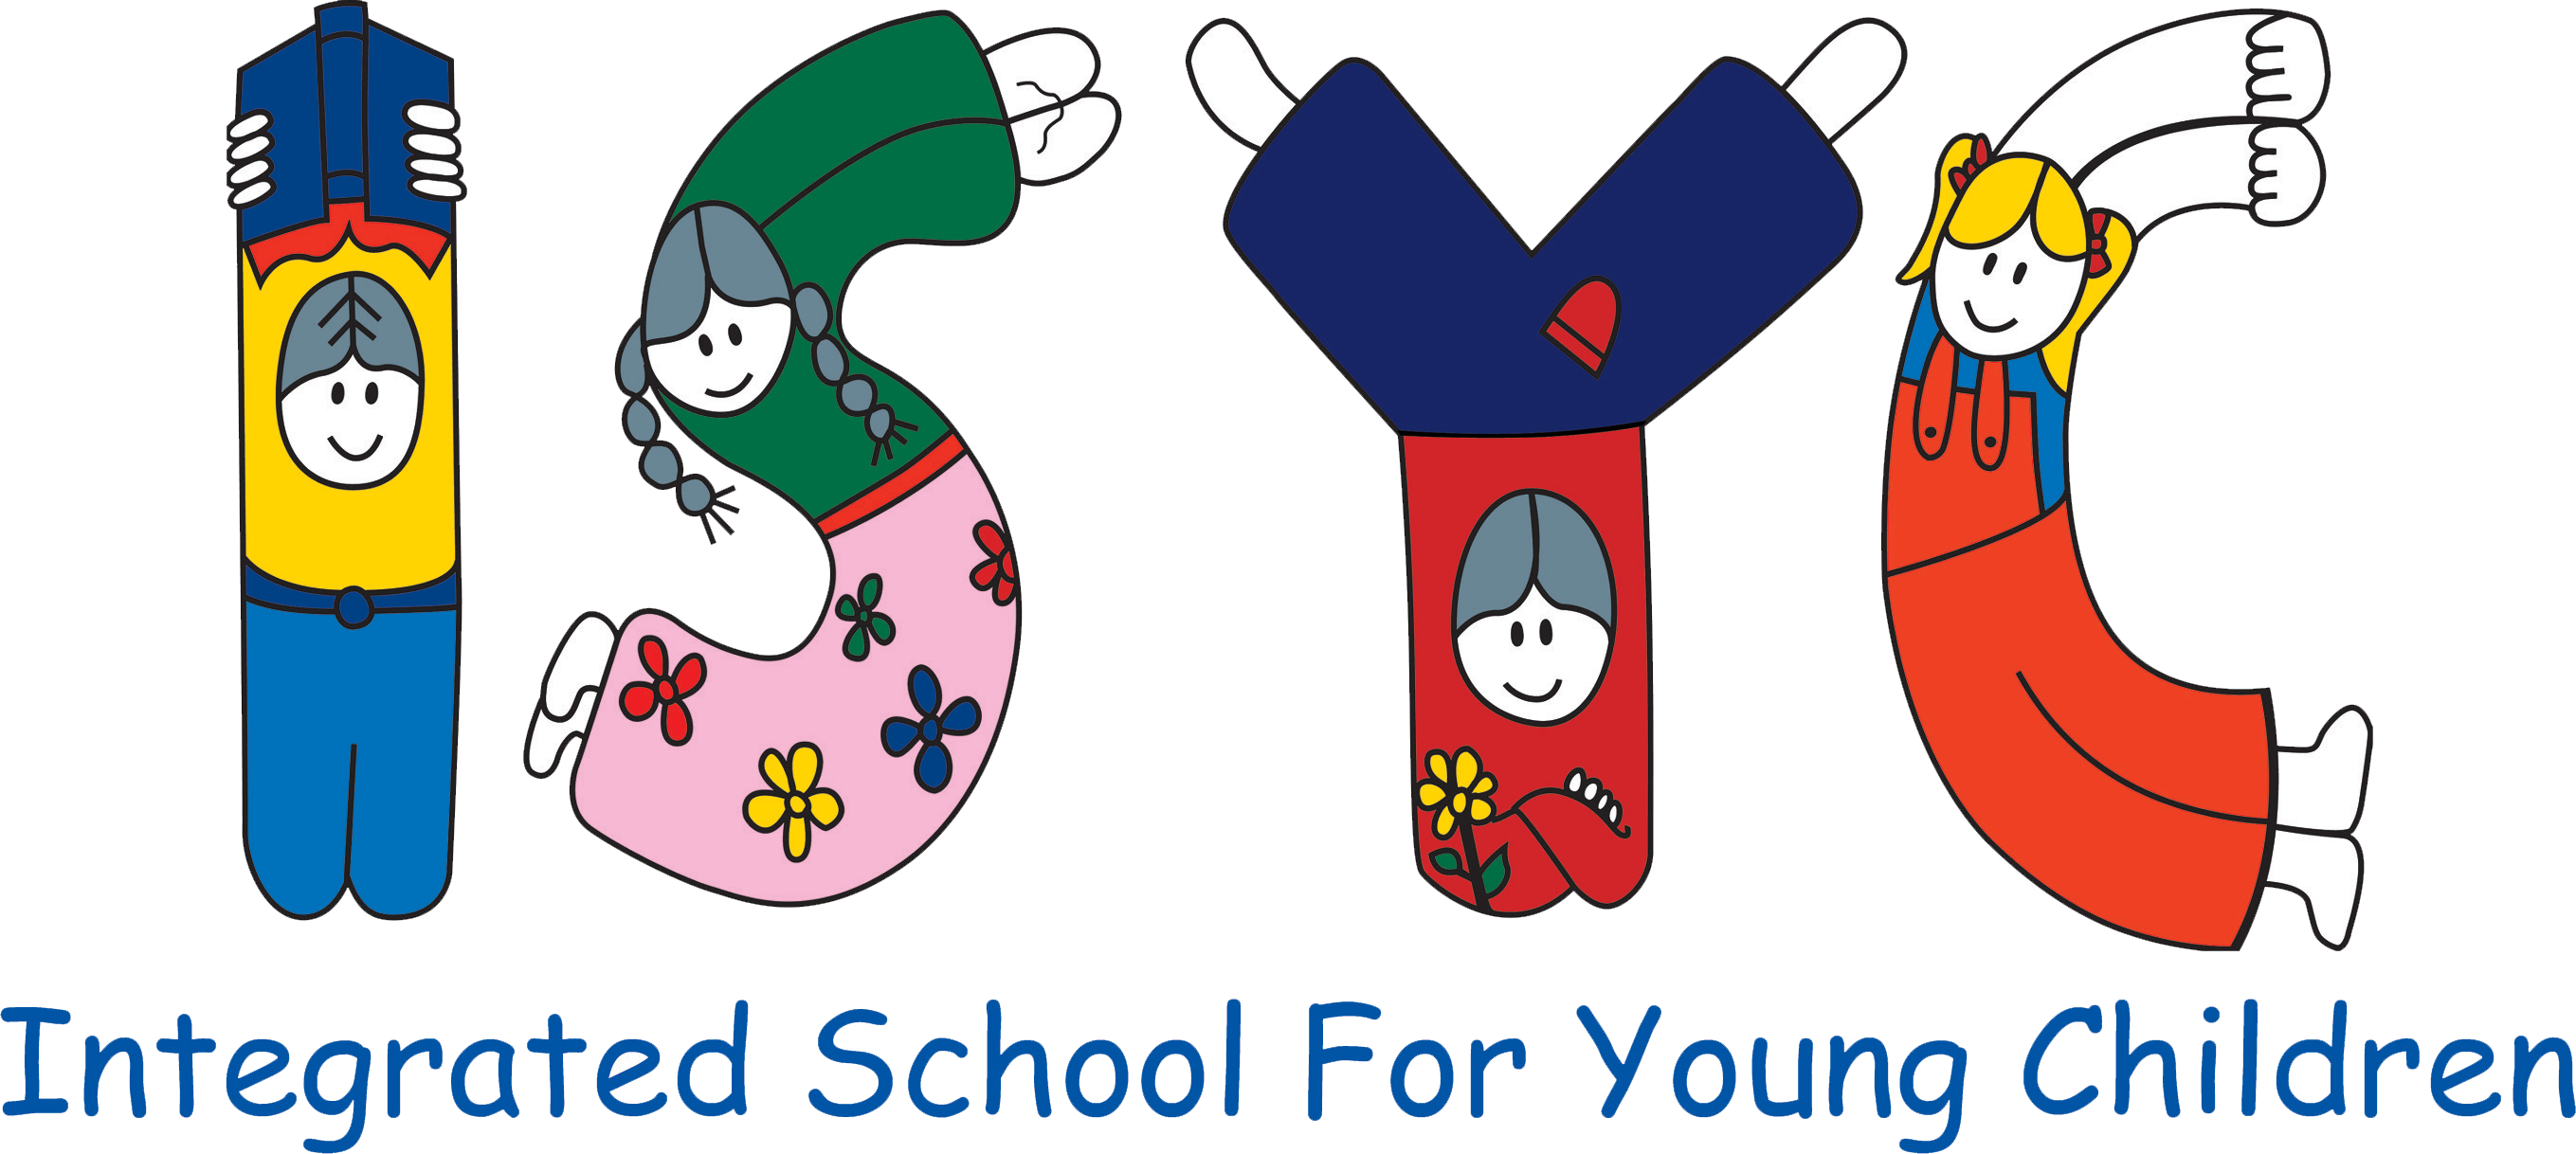 Isyc integrated school for. Curriculum clipart cognitive development